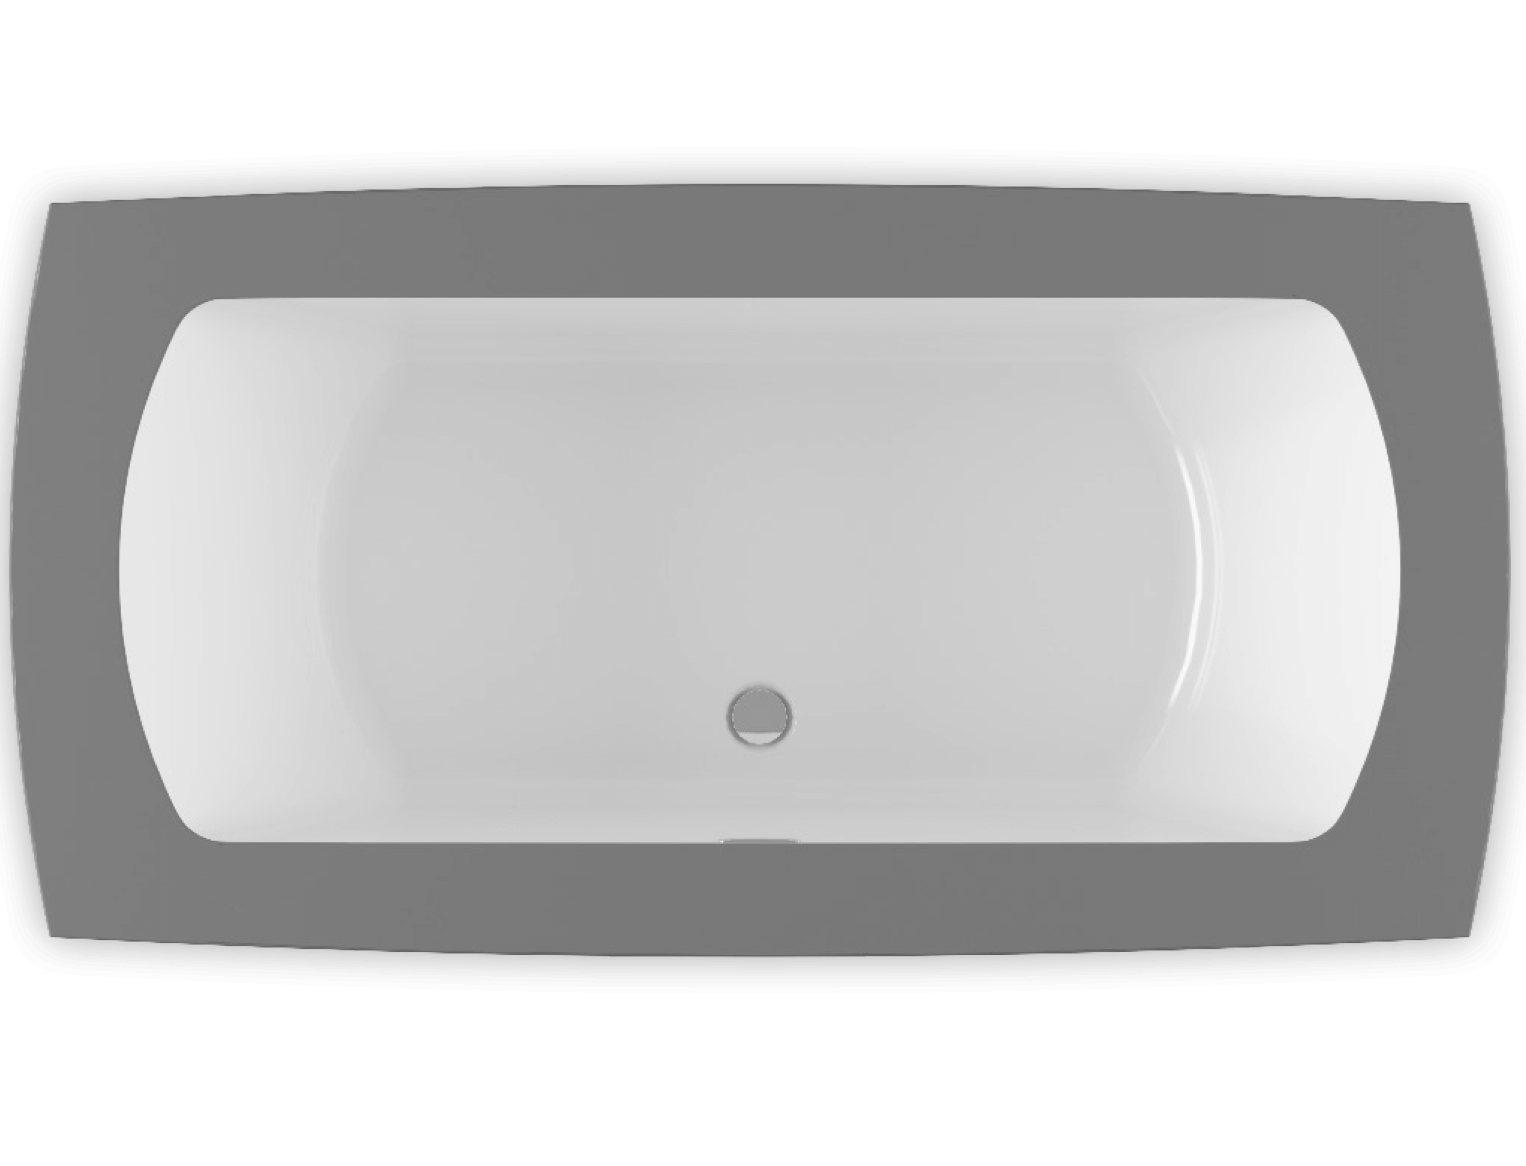 Monarch 6938C air jet bathtub for your modern bathroom